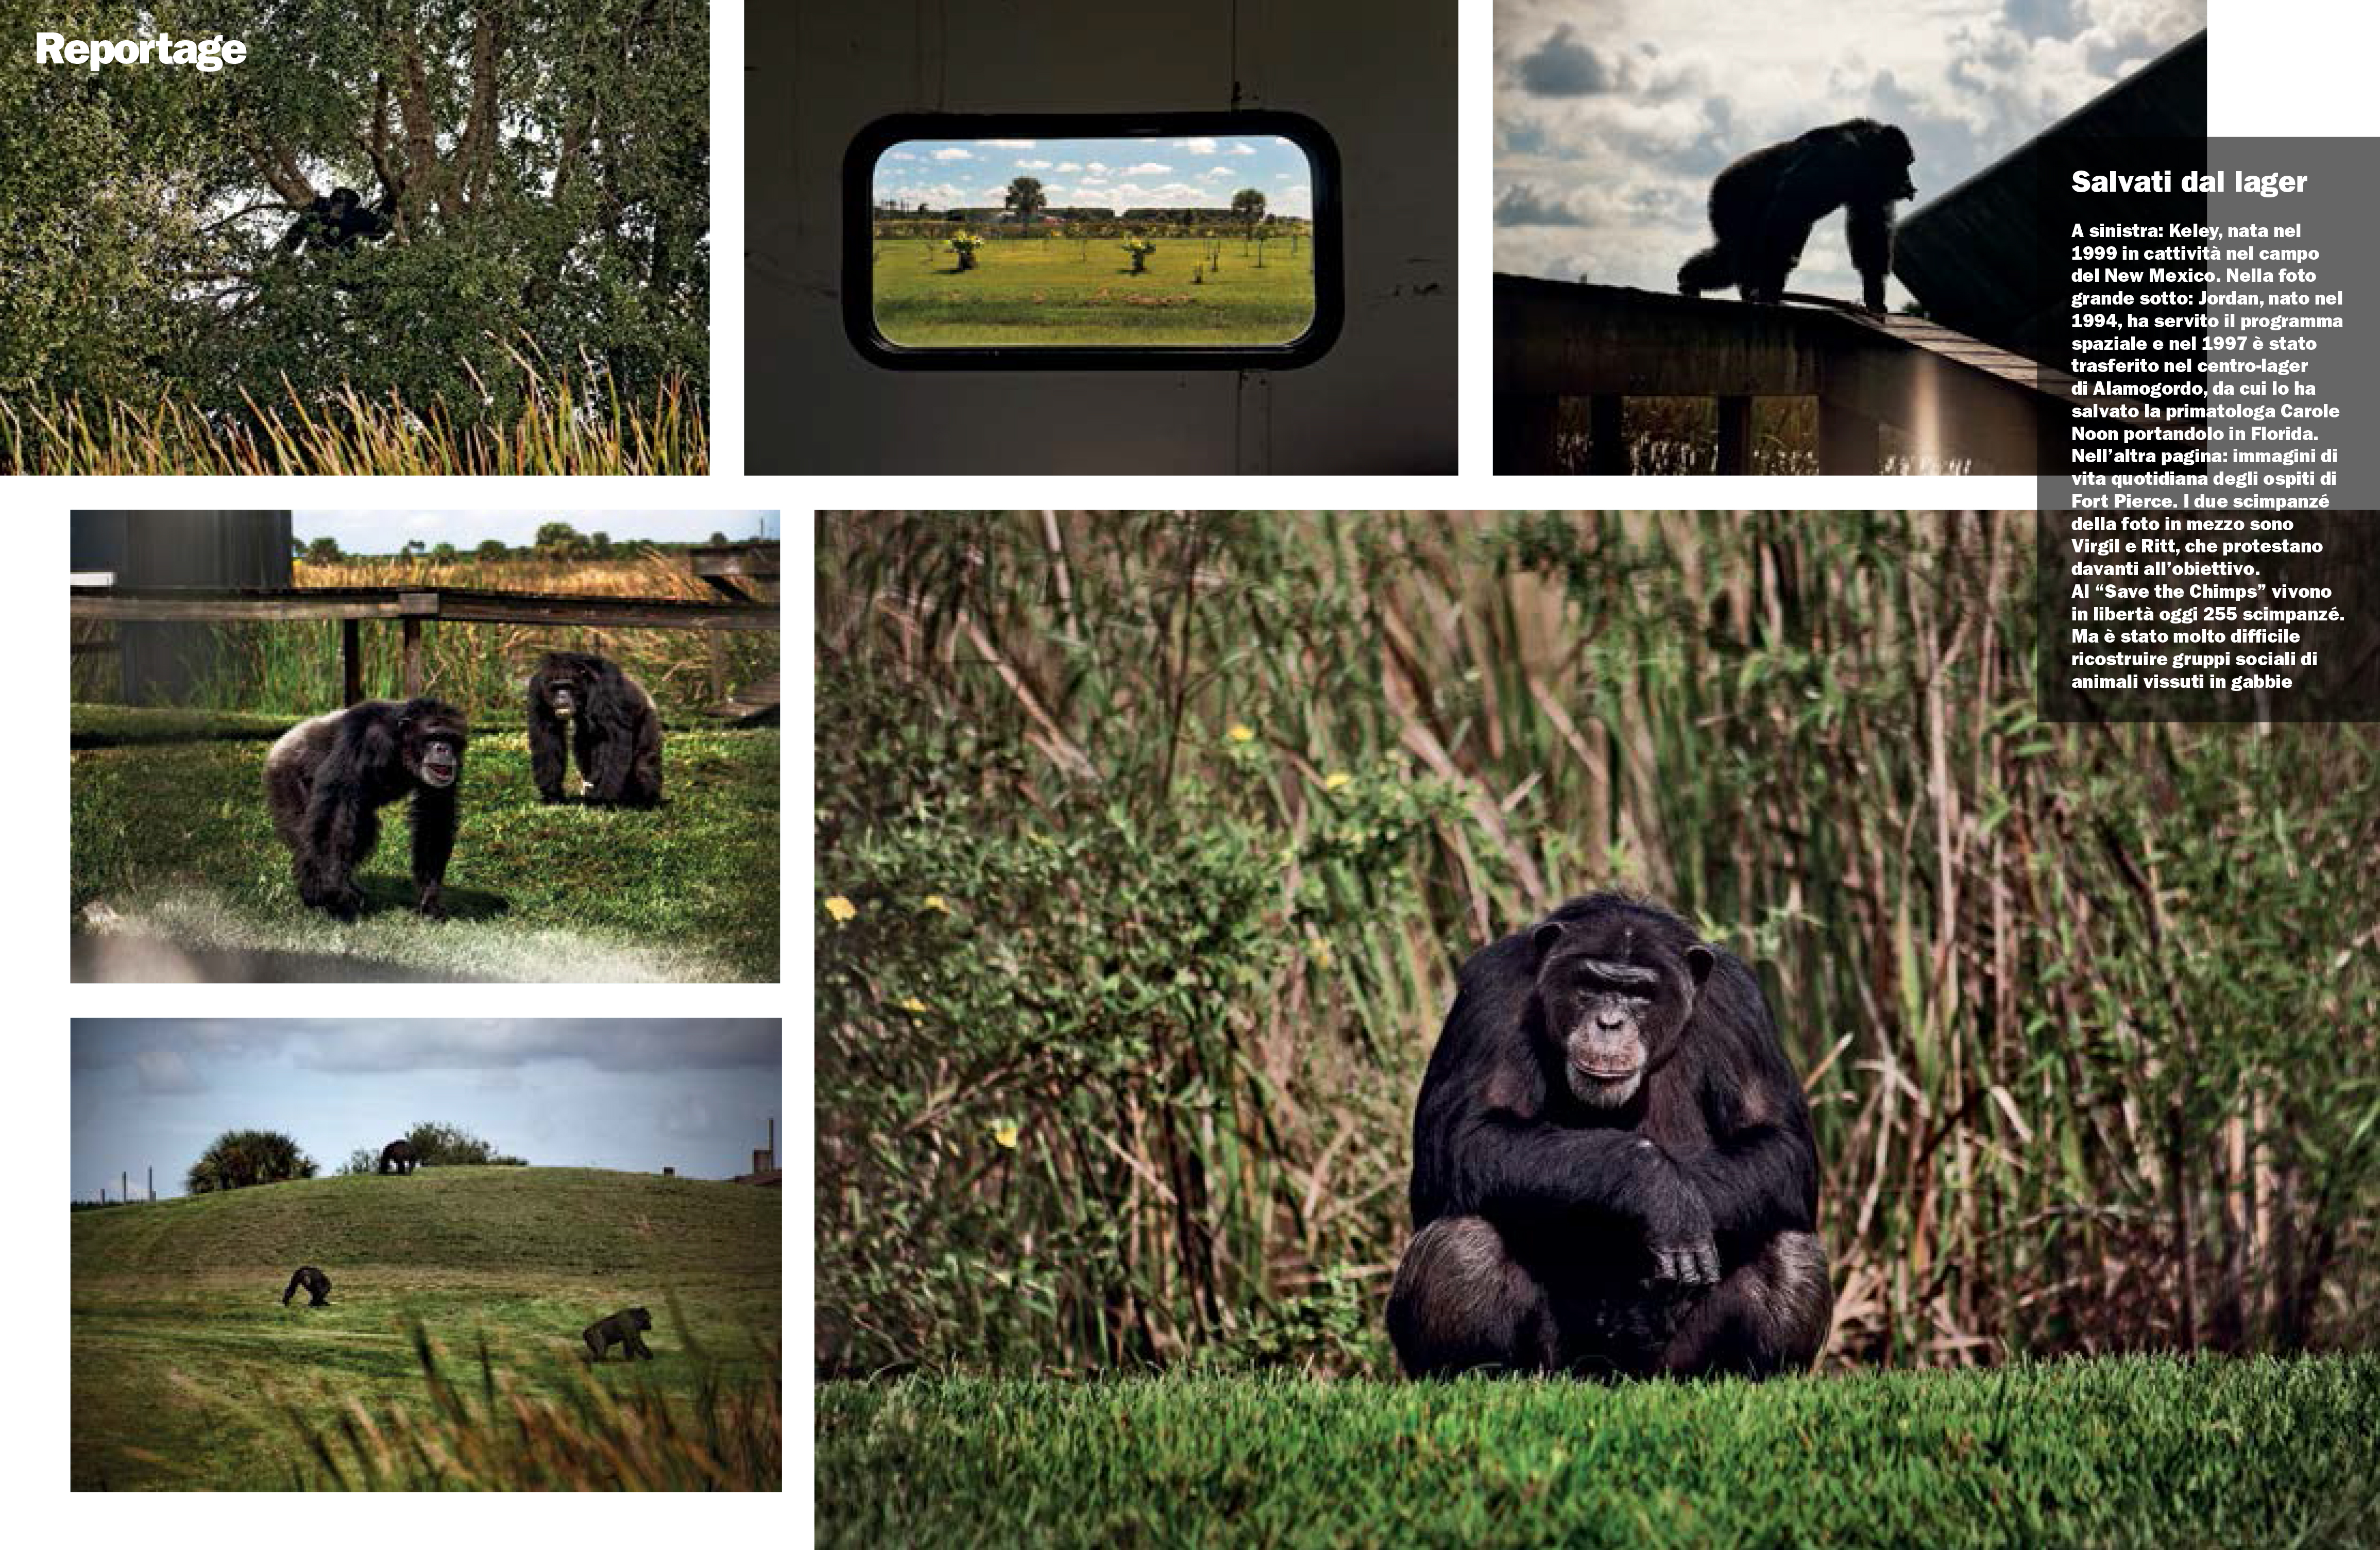 SAVE THE CHIMPS featured in L'ESPRESSO MAGAZINE-2